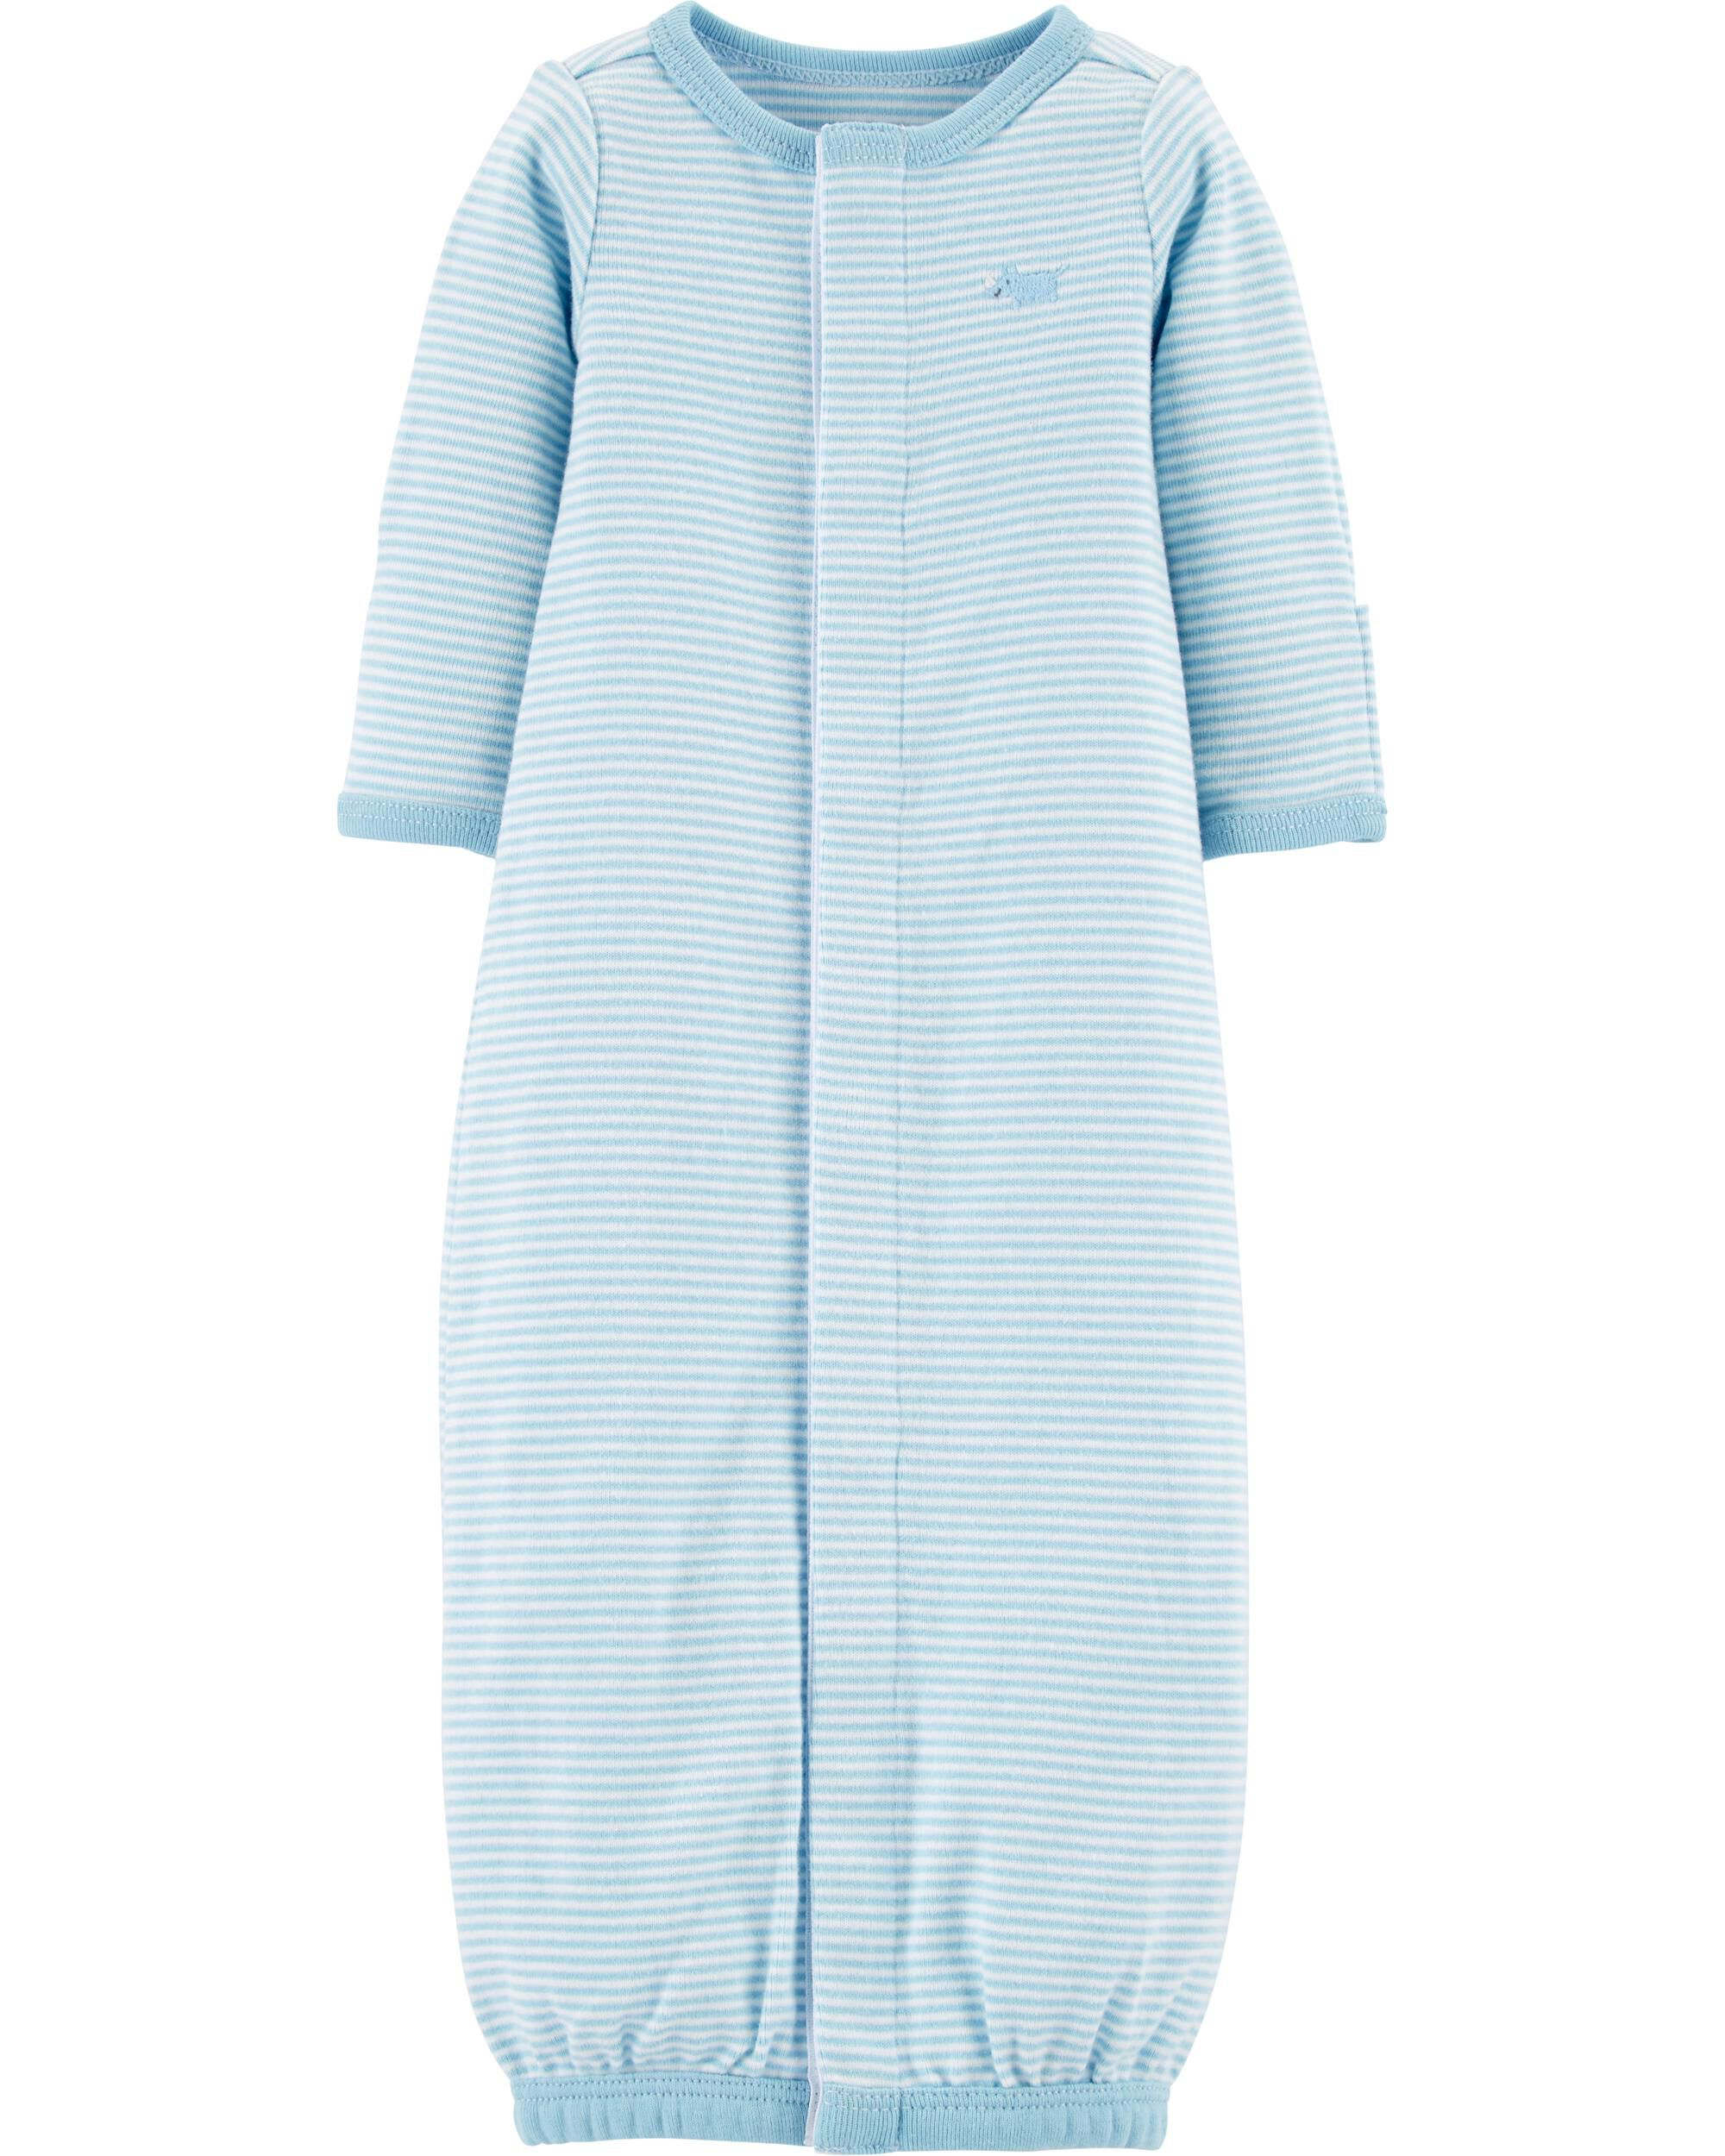 Preemie Collection Sleeper Gown | Carters.com